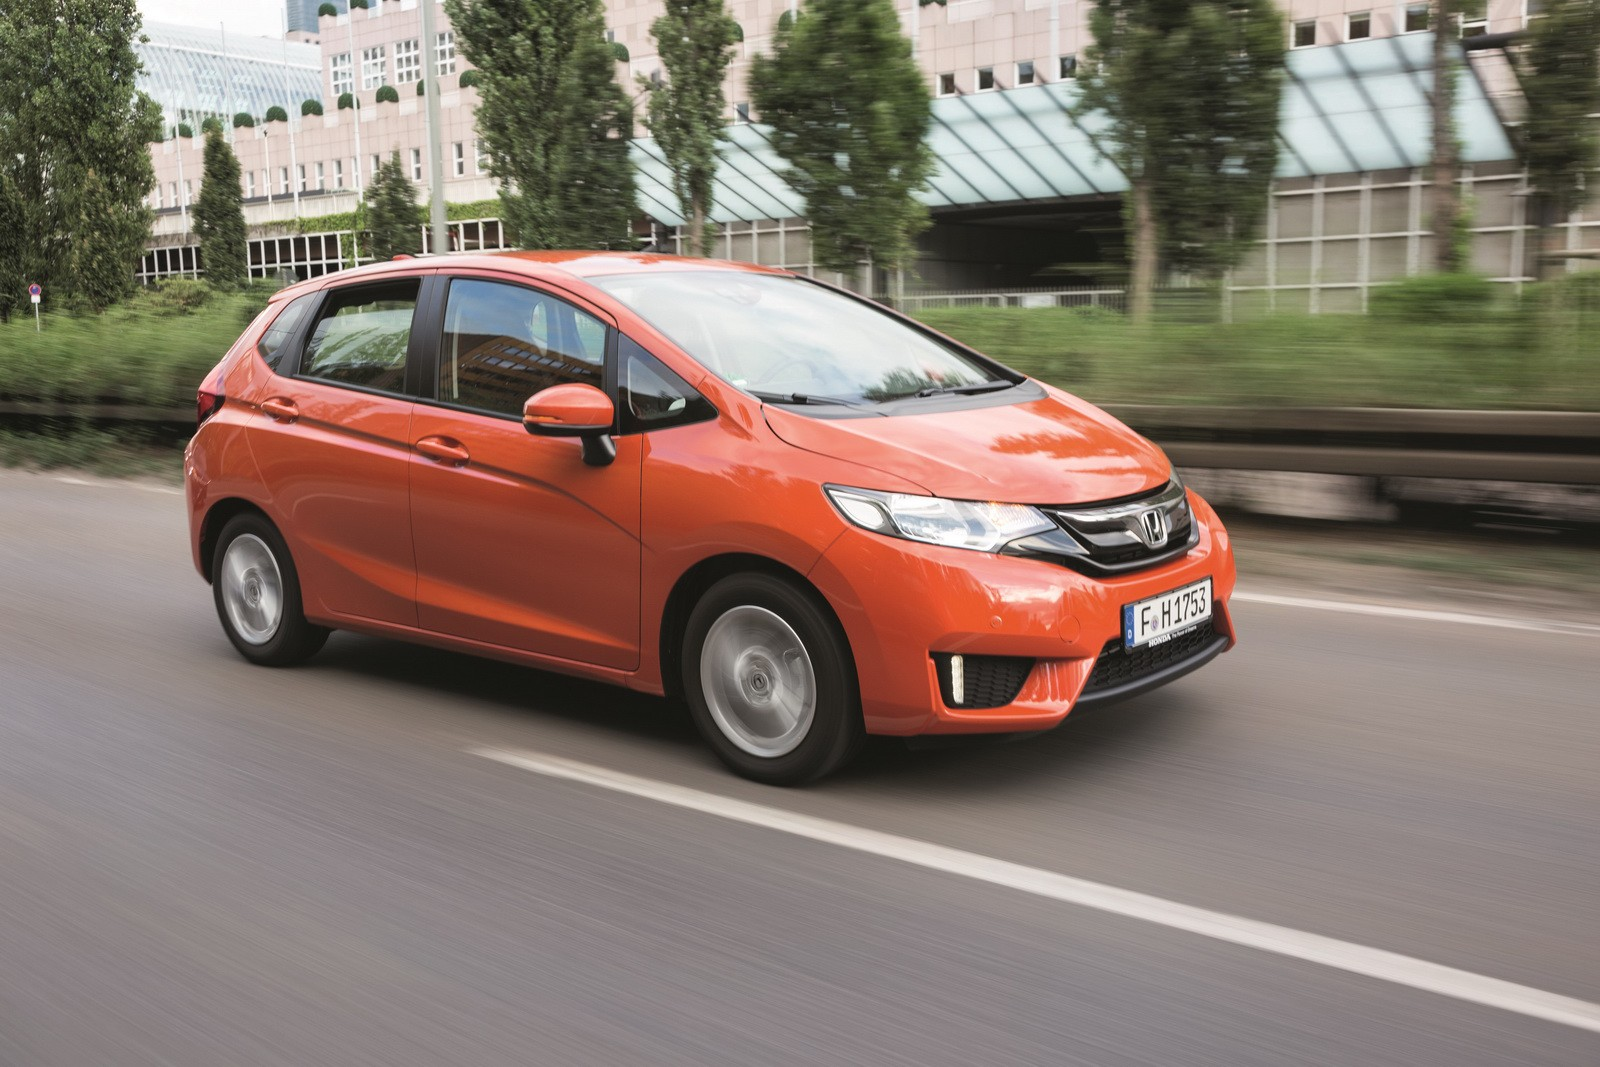 2015 honda jazz comes to europe with 1 3 liter engine and boosted interior space autoevolution. Black Bedroom Furniture Sets. Home Design Ideas